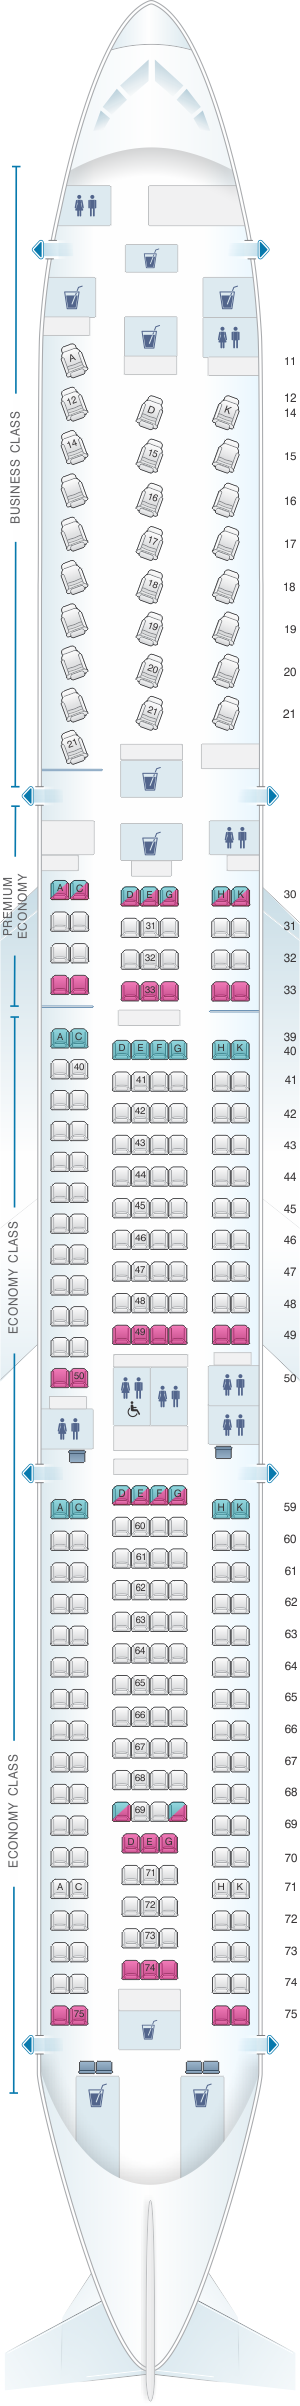 Seat map for Cathay Pacific Airways Airbus A340 300 (34J)